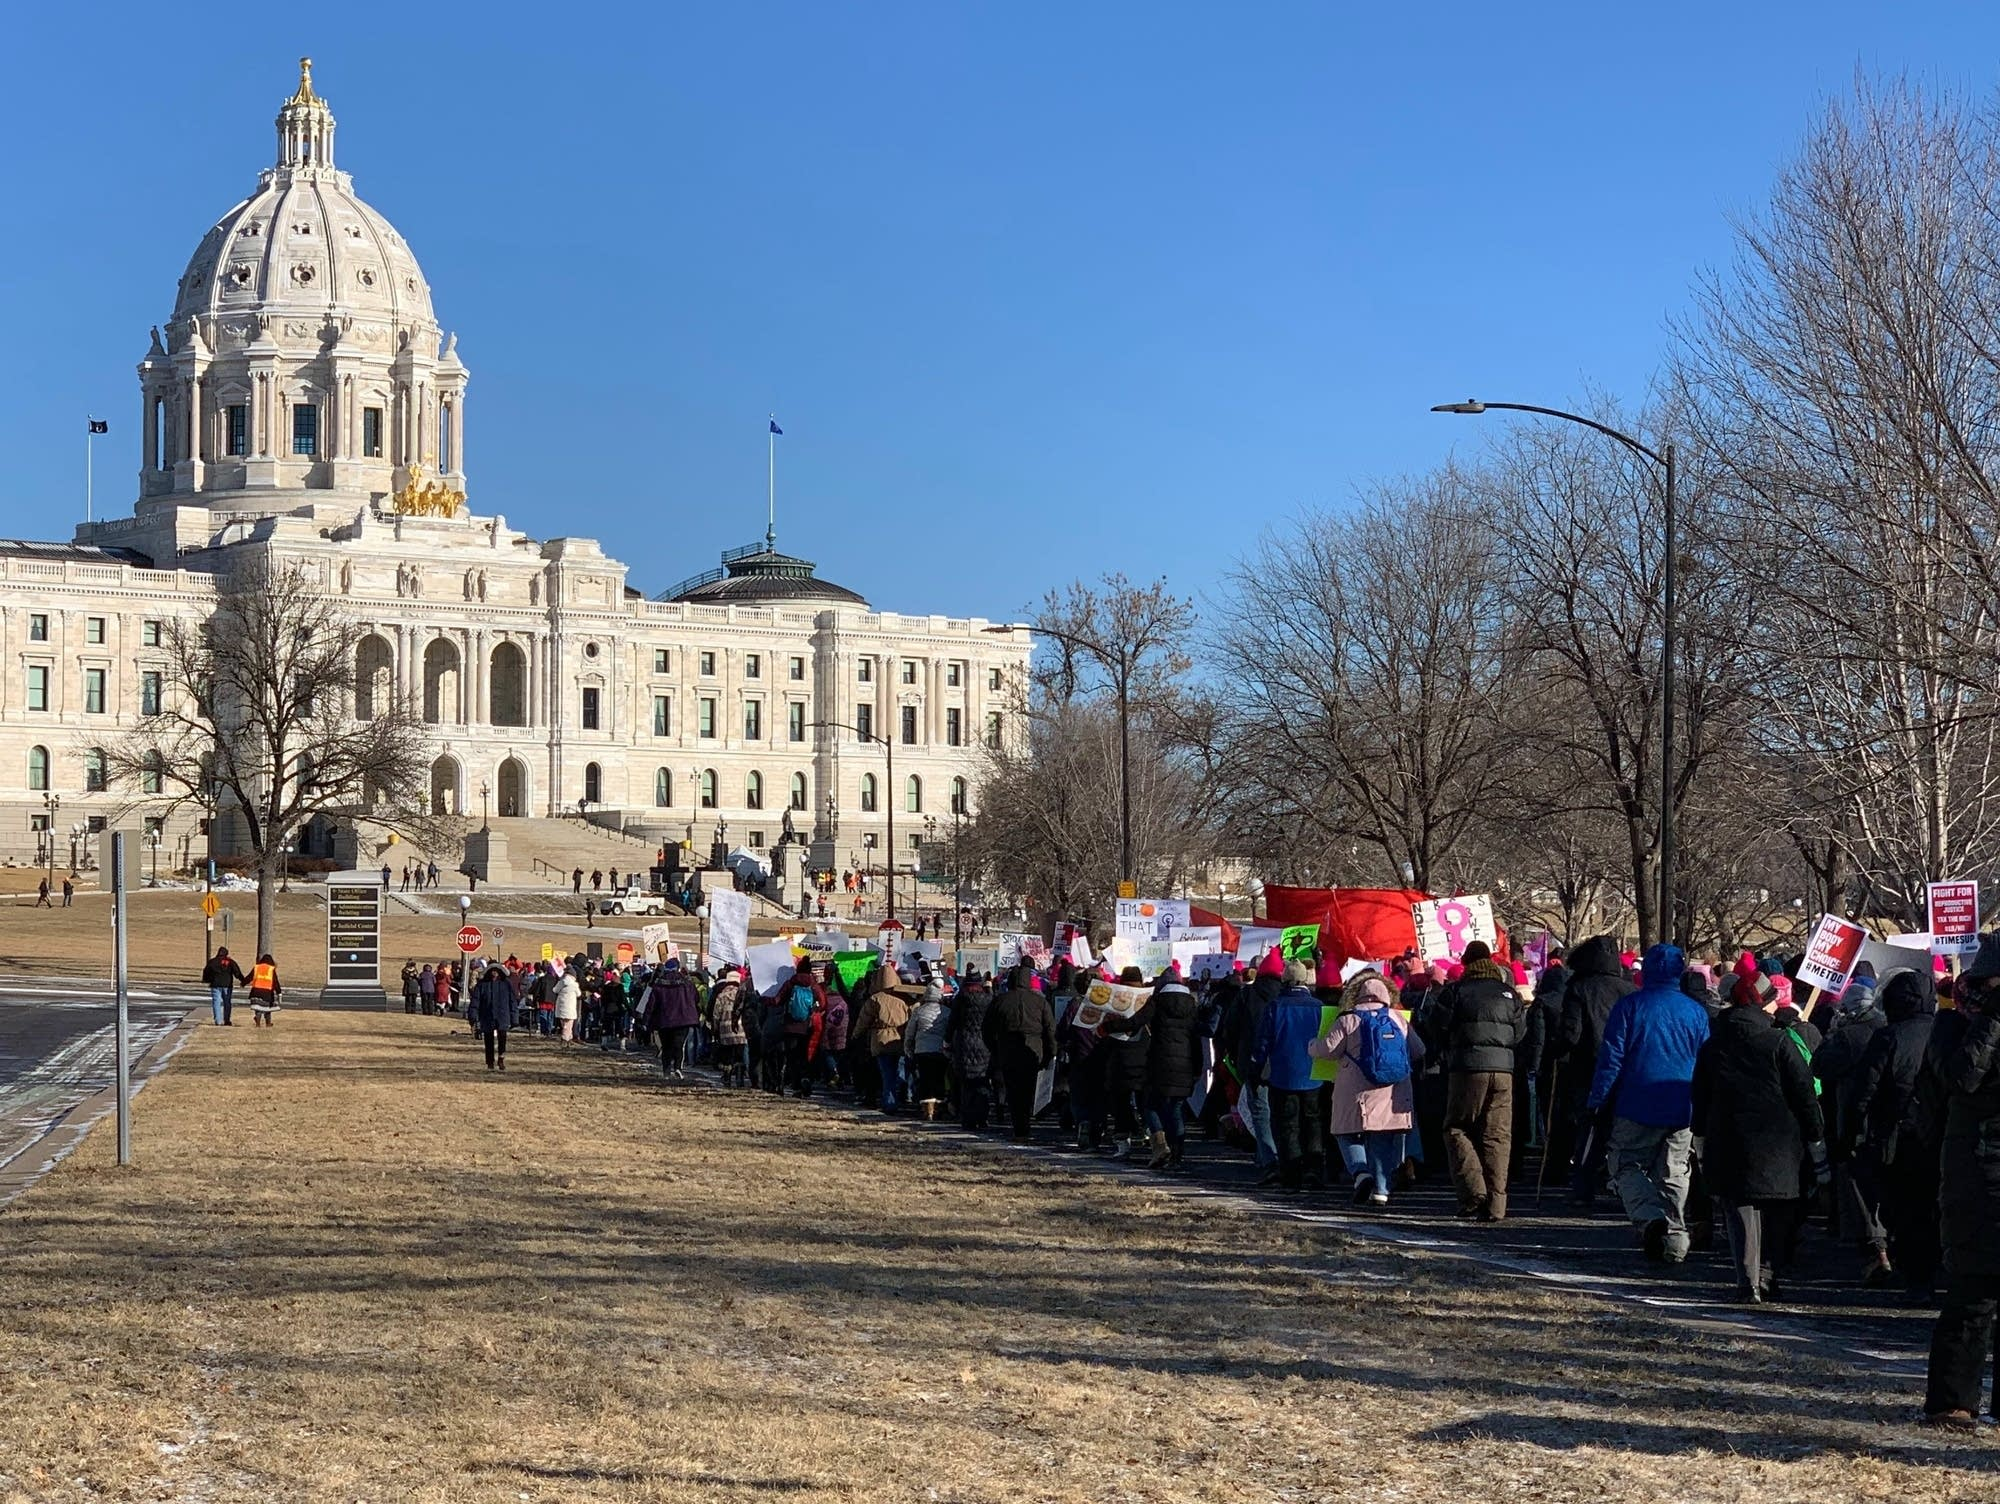 The Women's March Minnesota crowd approaches the State Capitol.